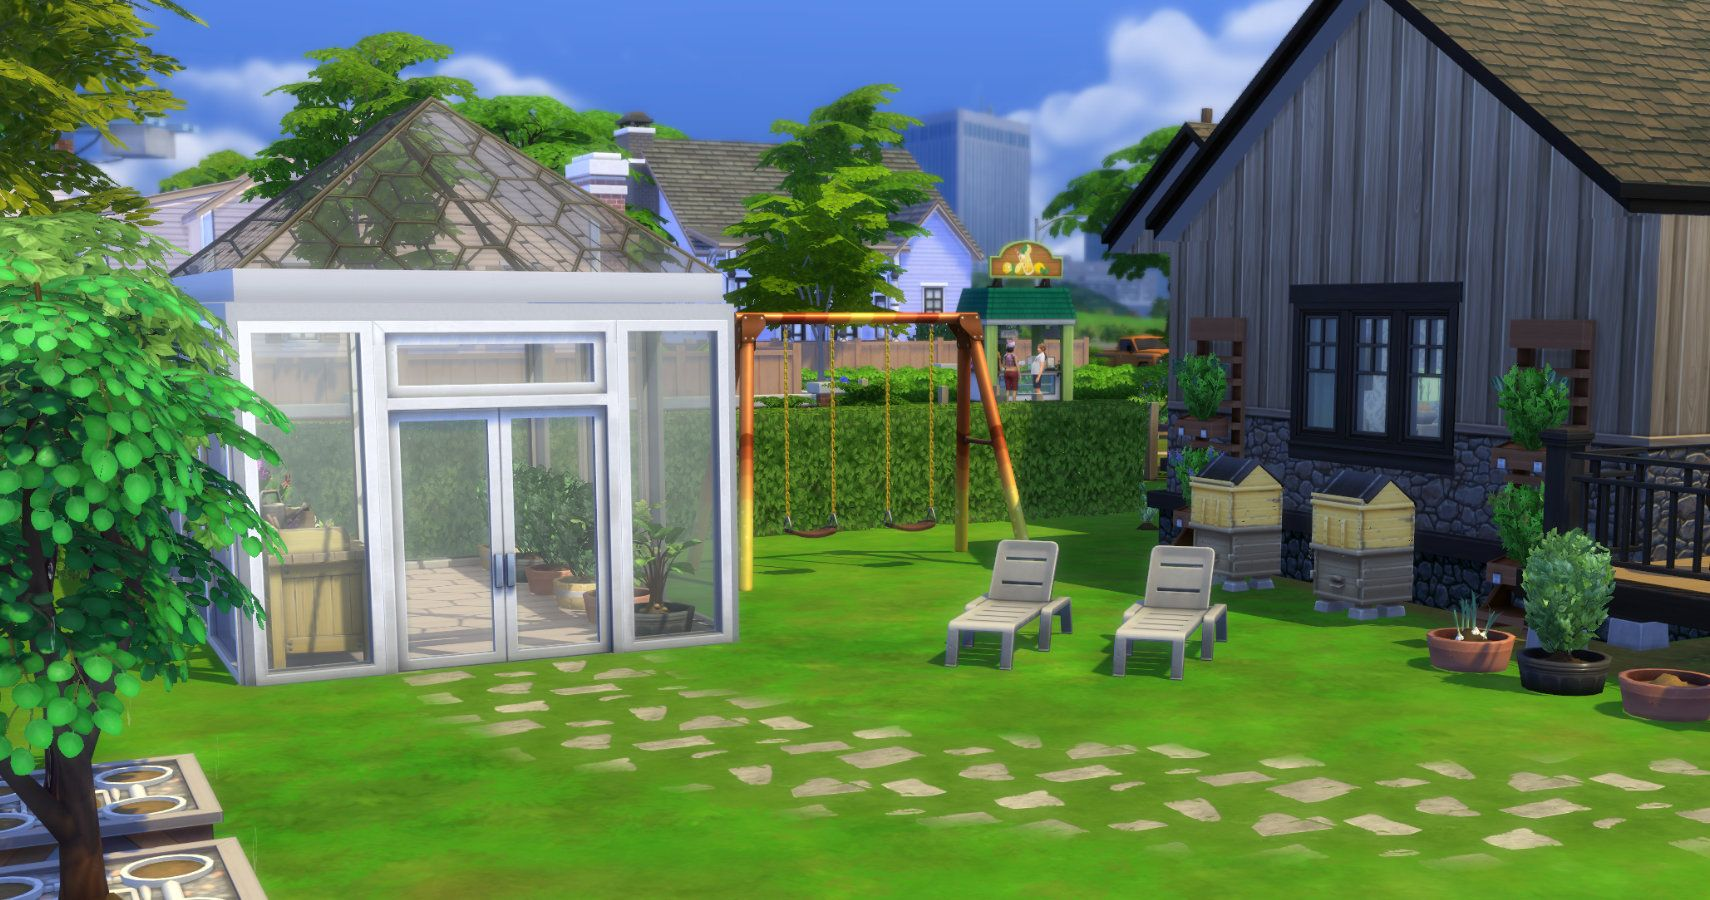 The Sims 32 Seasons Making Money With The Gardening Skill